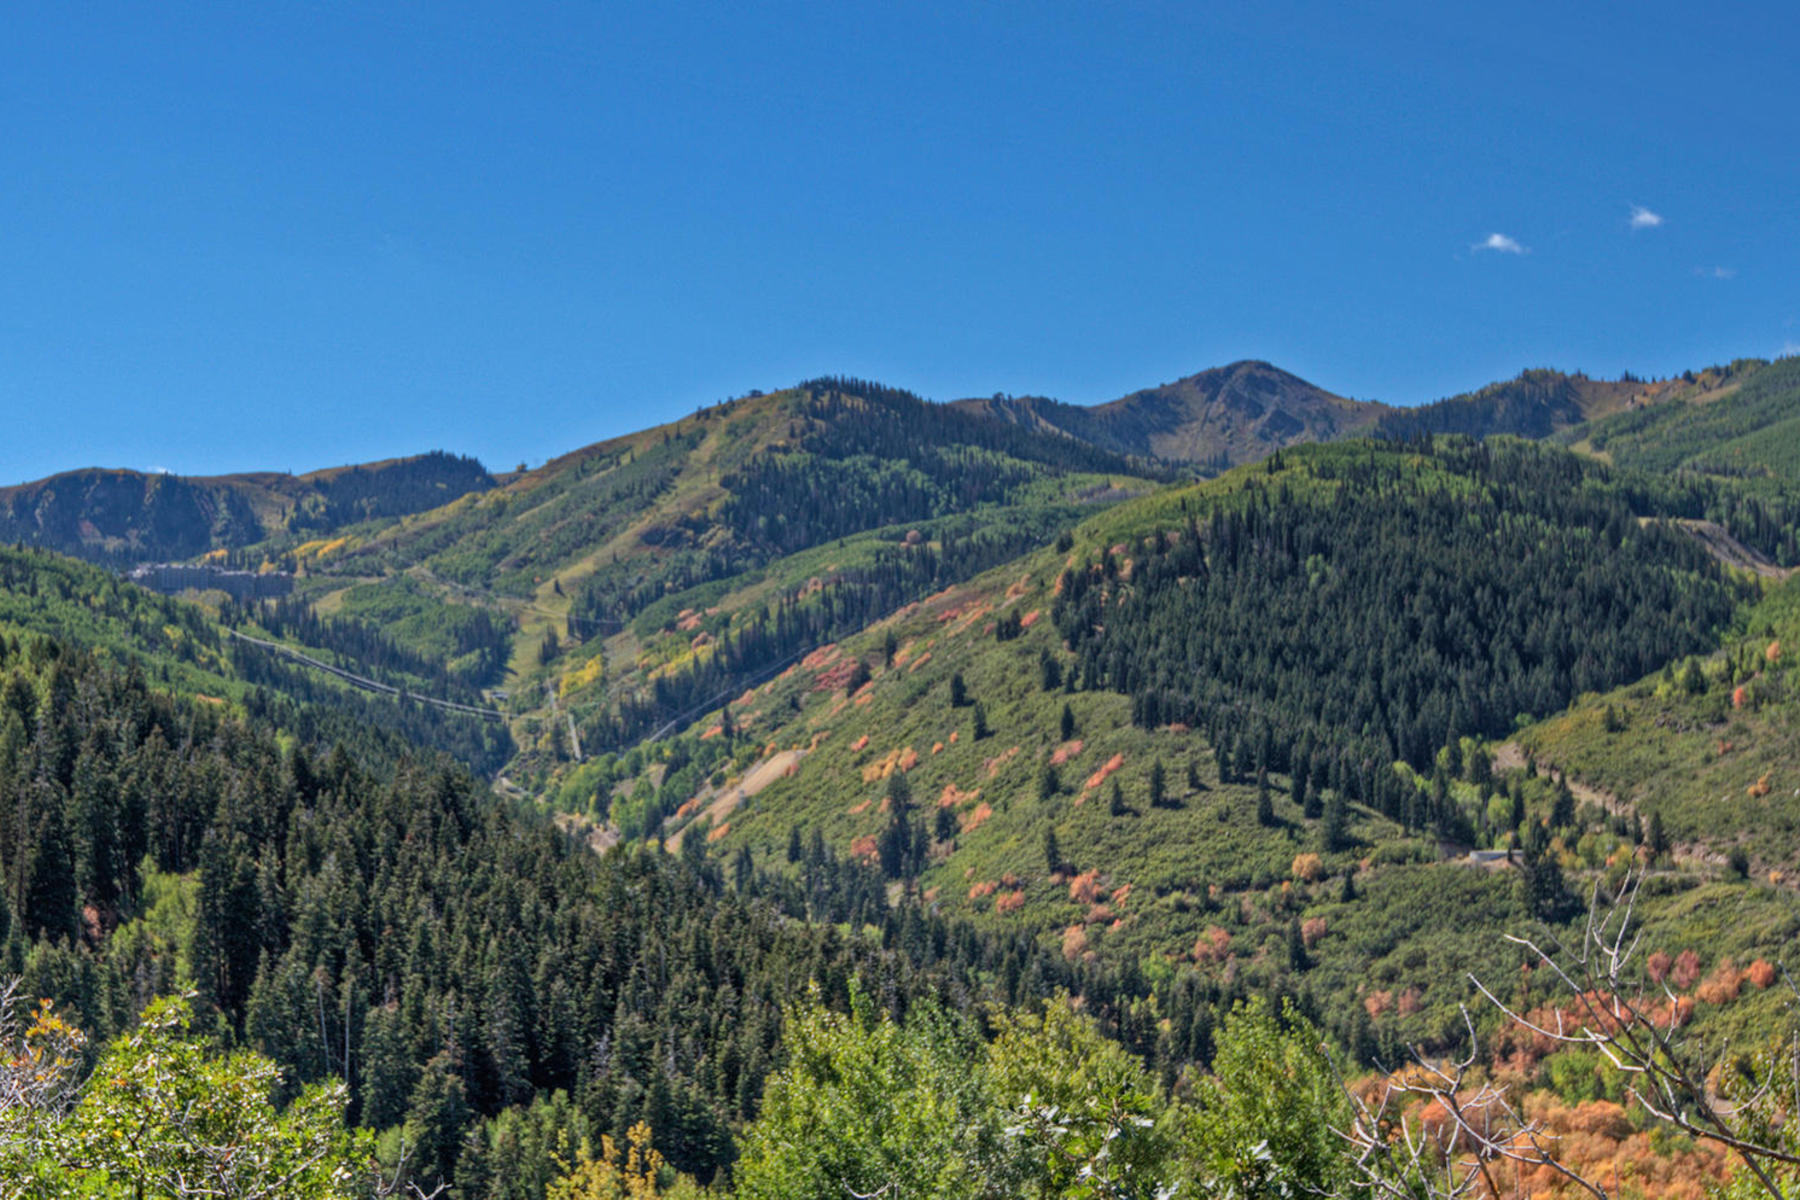 Property For Sale at Ultra Rare Upper Deer Valley Home Site, Staggering Views